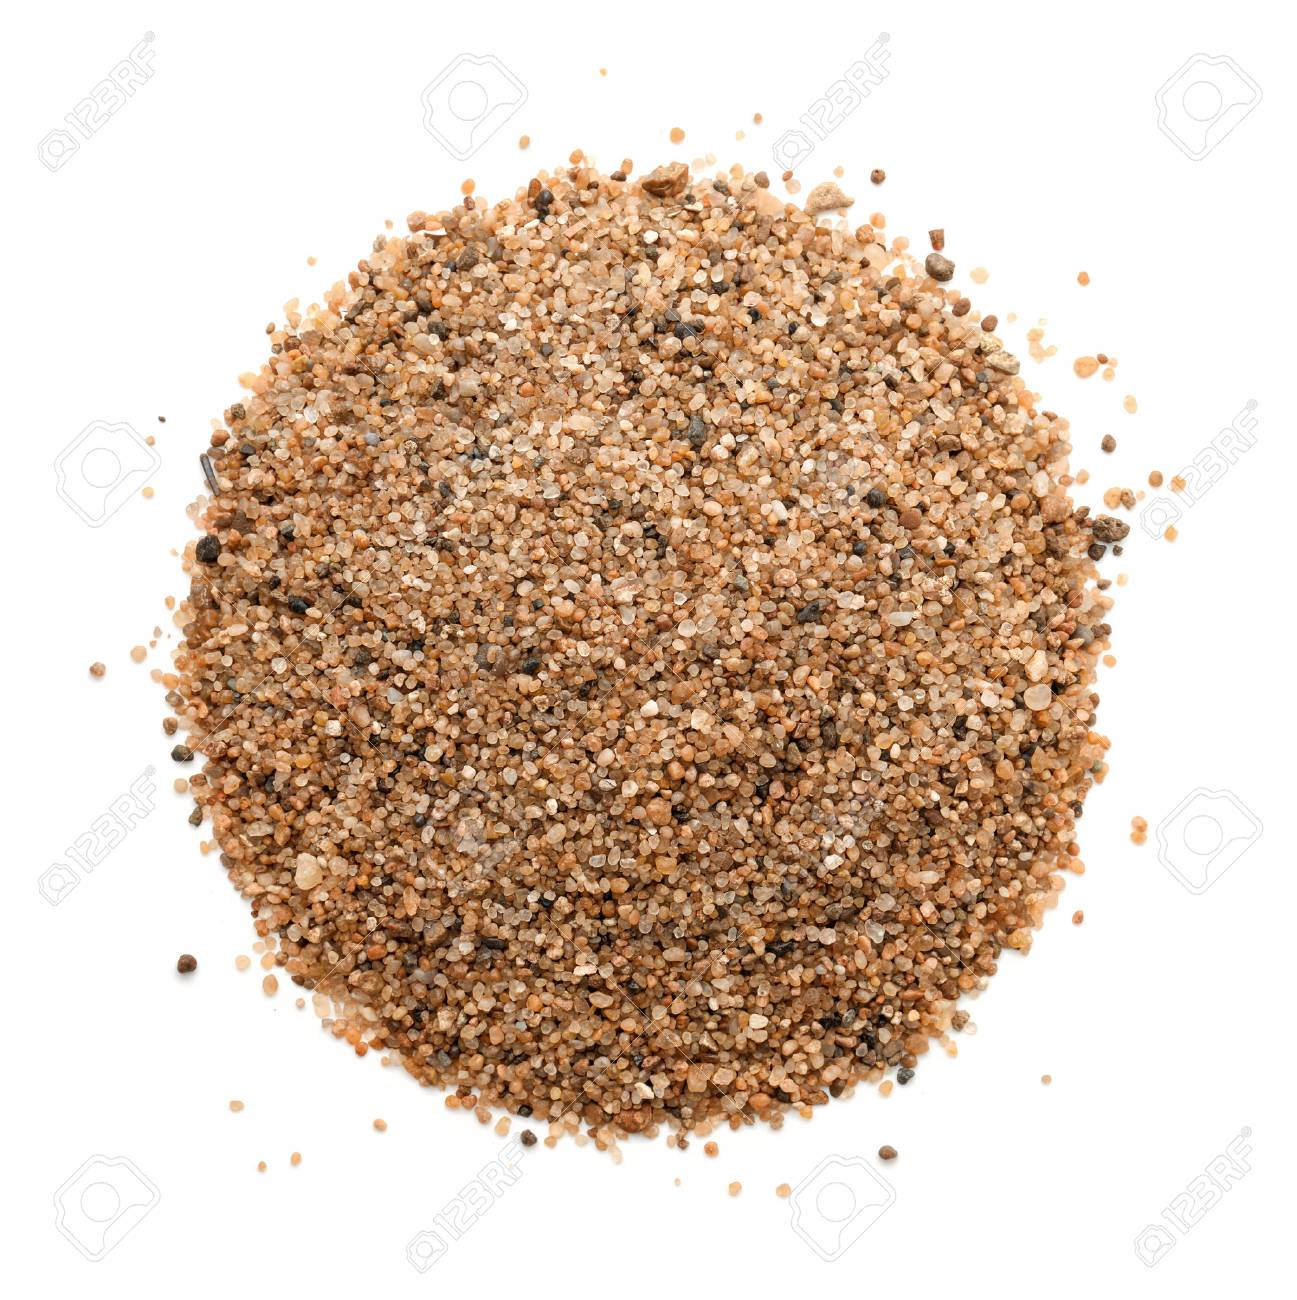 Top view of sand heap isolated on white - 66539556